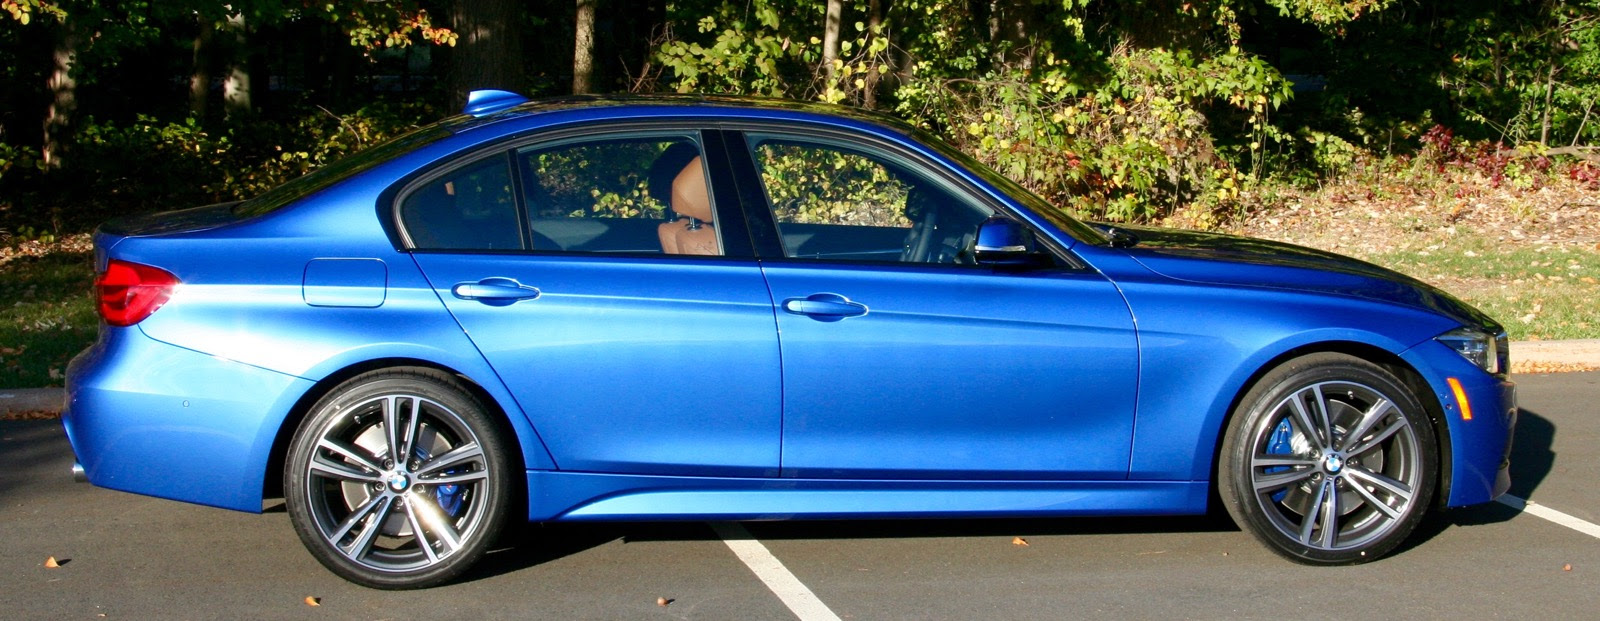 (F30) Official ESTORIL BLUE II F30 Photo Thread - Page 31